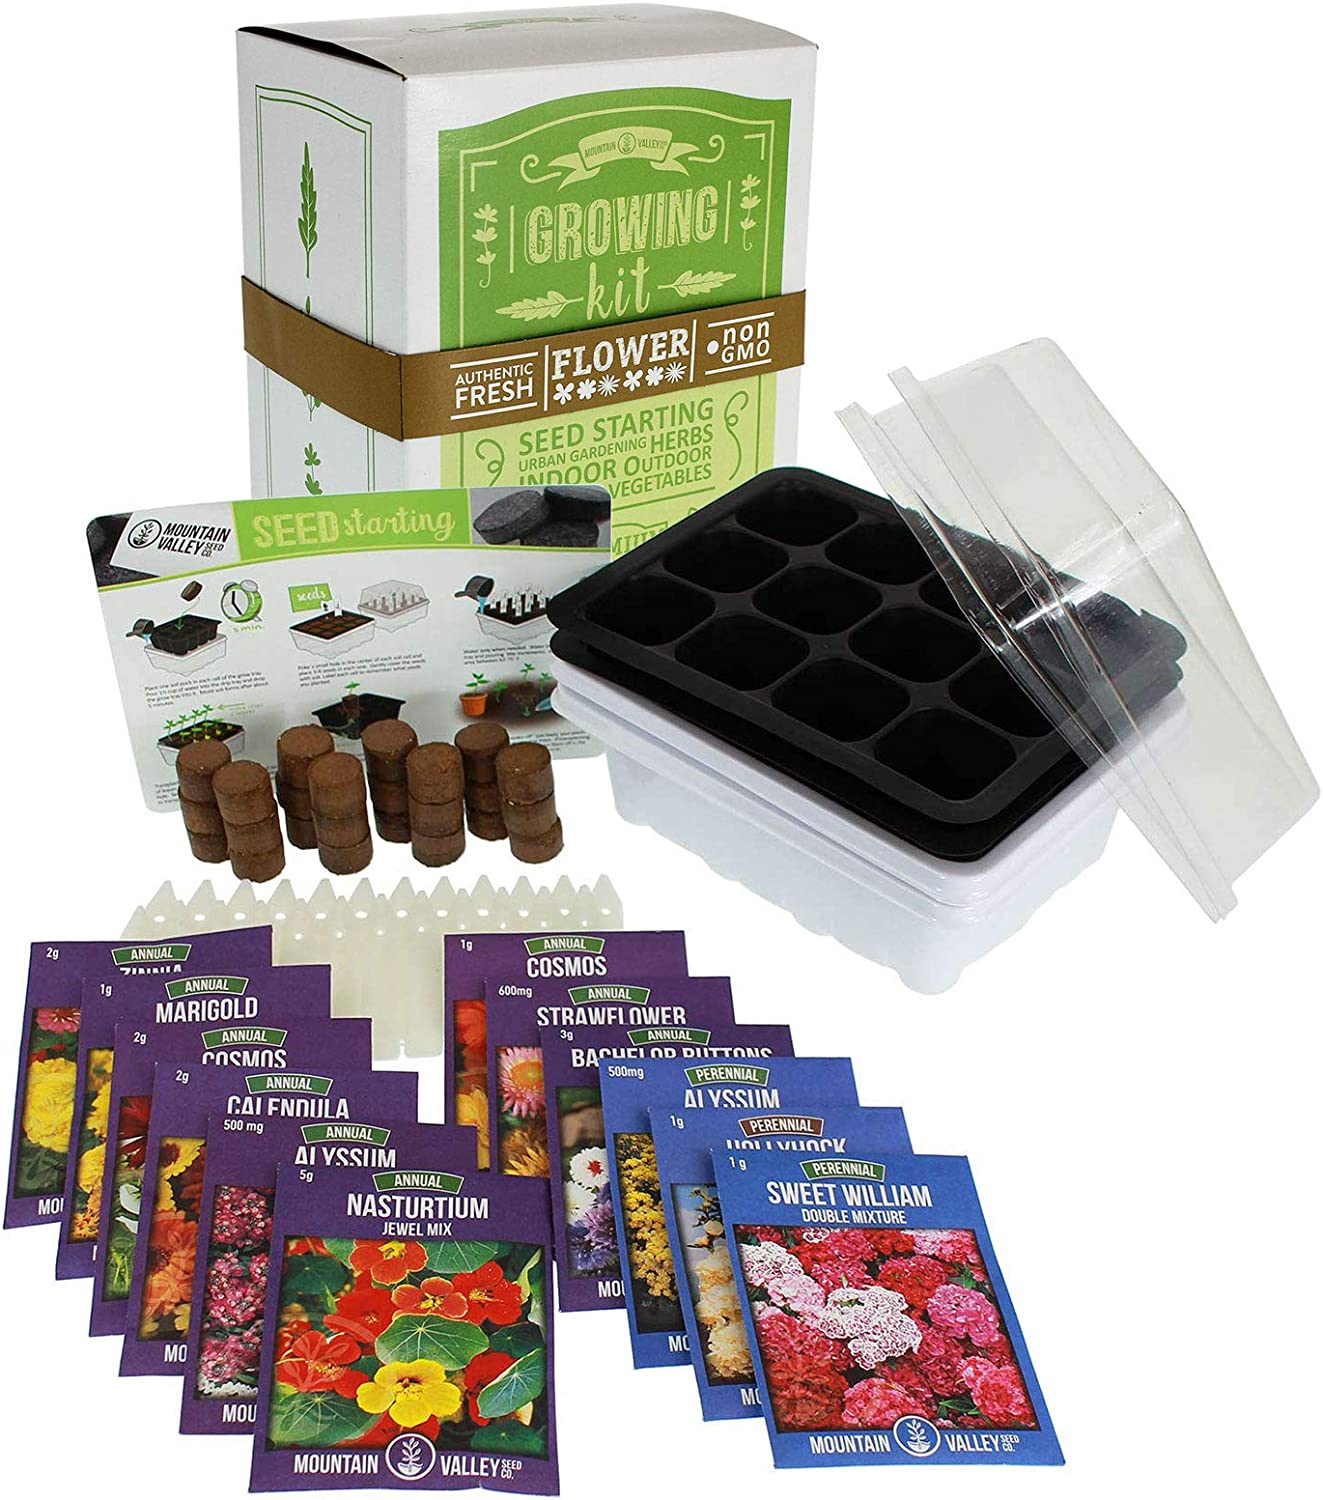 Annual Flower Garden Seed Starter Kit | Deluxe | 12 Varieties of Flower Seeds for Planting: Sweet William, Strawflower, Bachelors Buttons, Cosmos, Zinnia, Alyssum, Zinnia & More